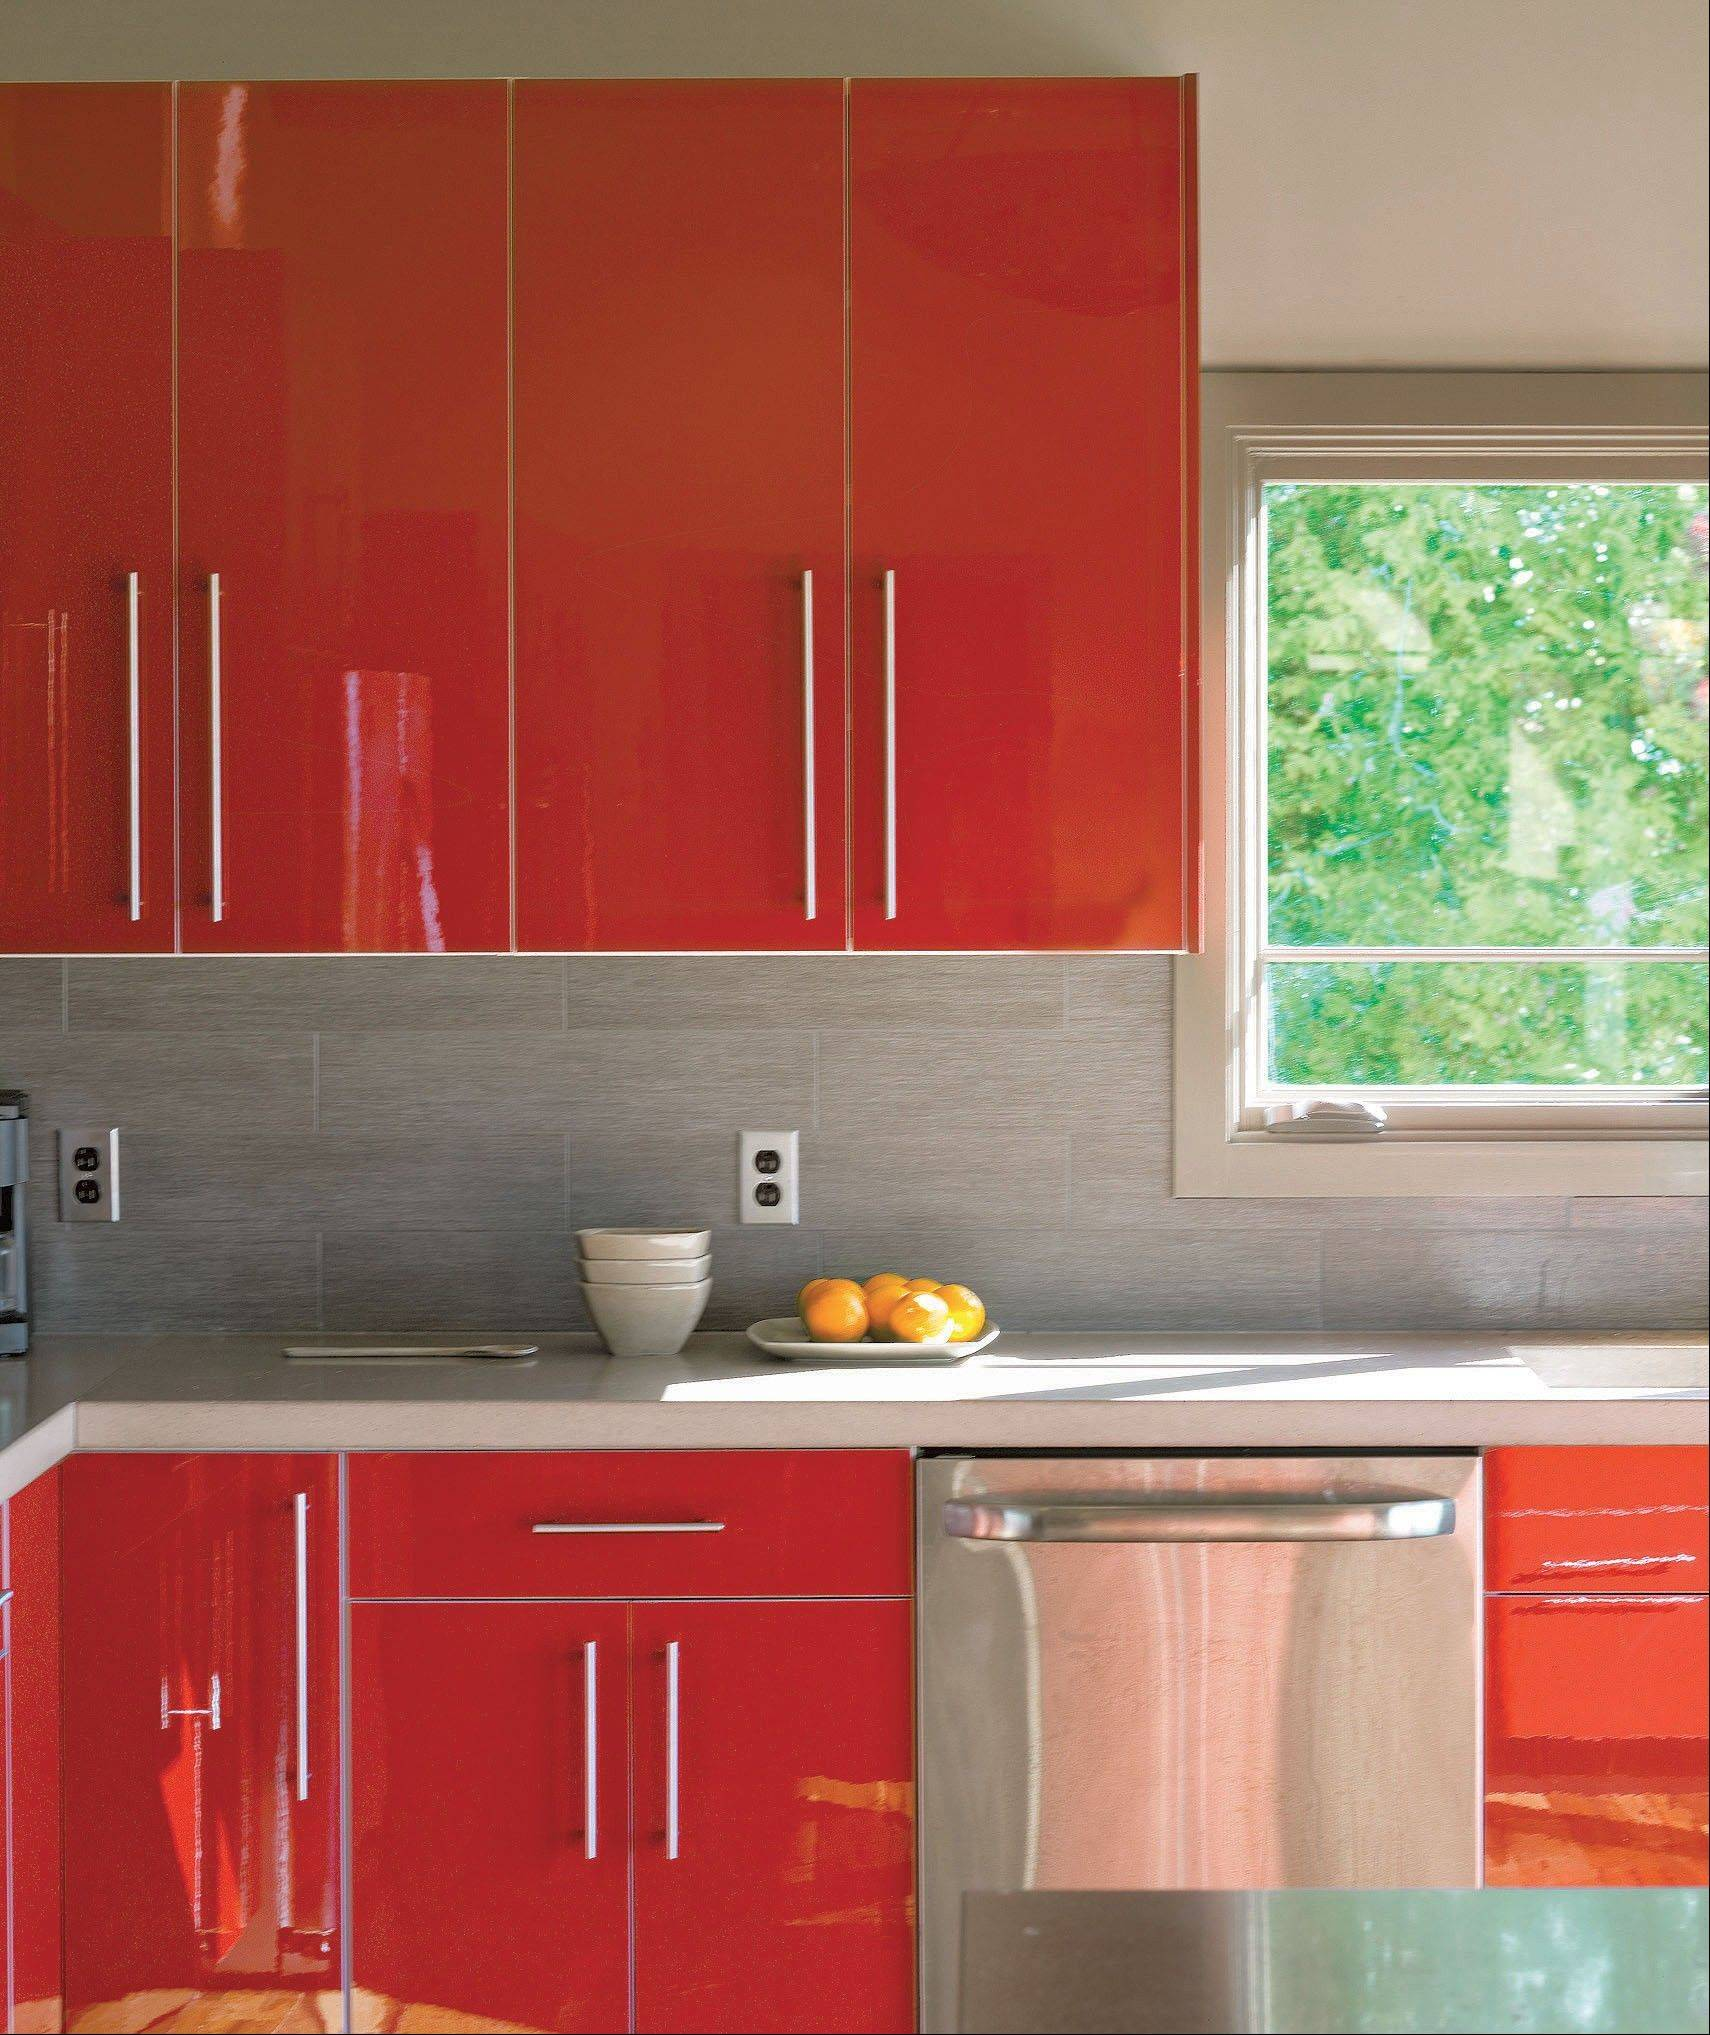 Shiny kitchen cabinets with a colorful high-gloss finish are back in style.